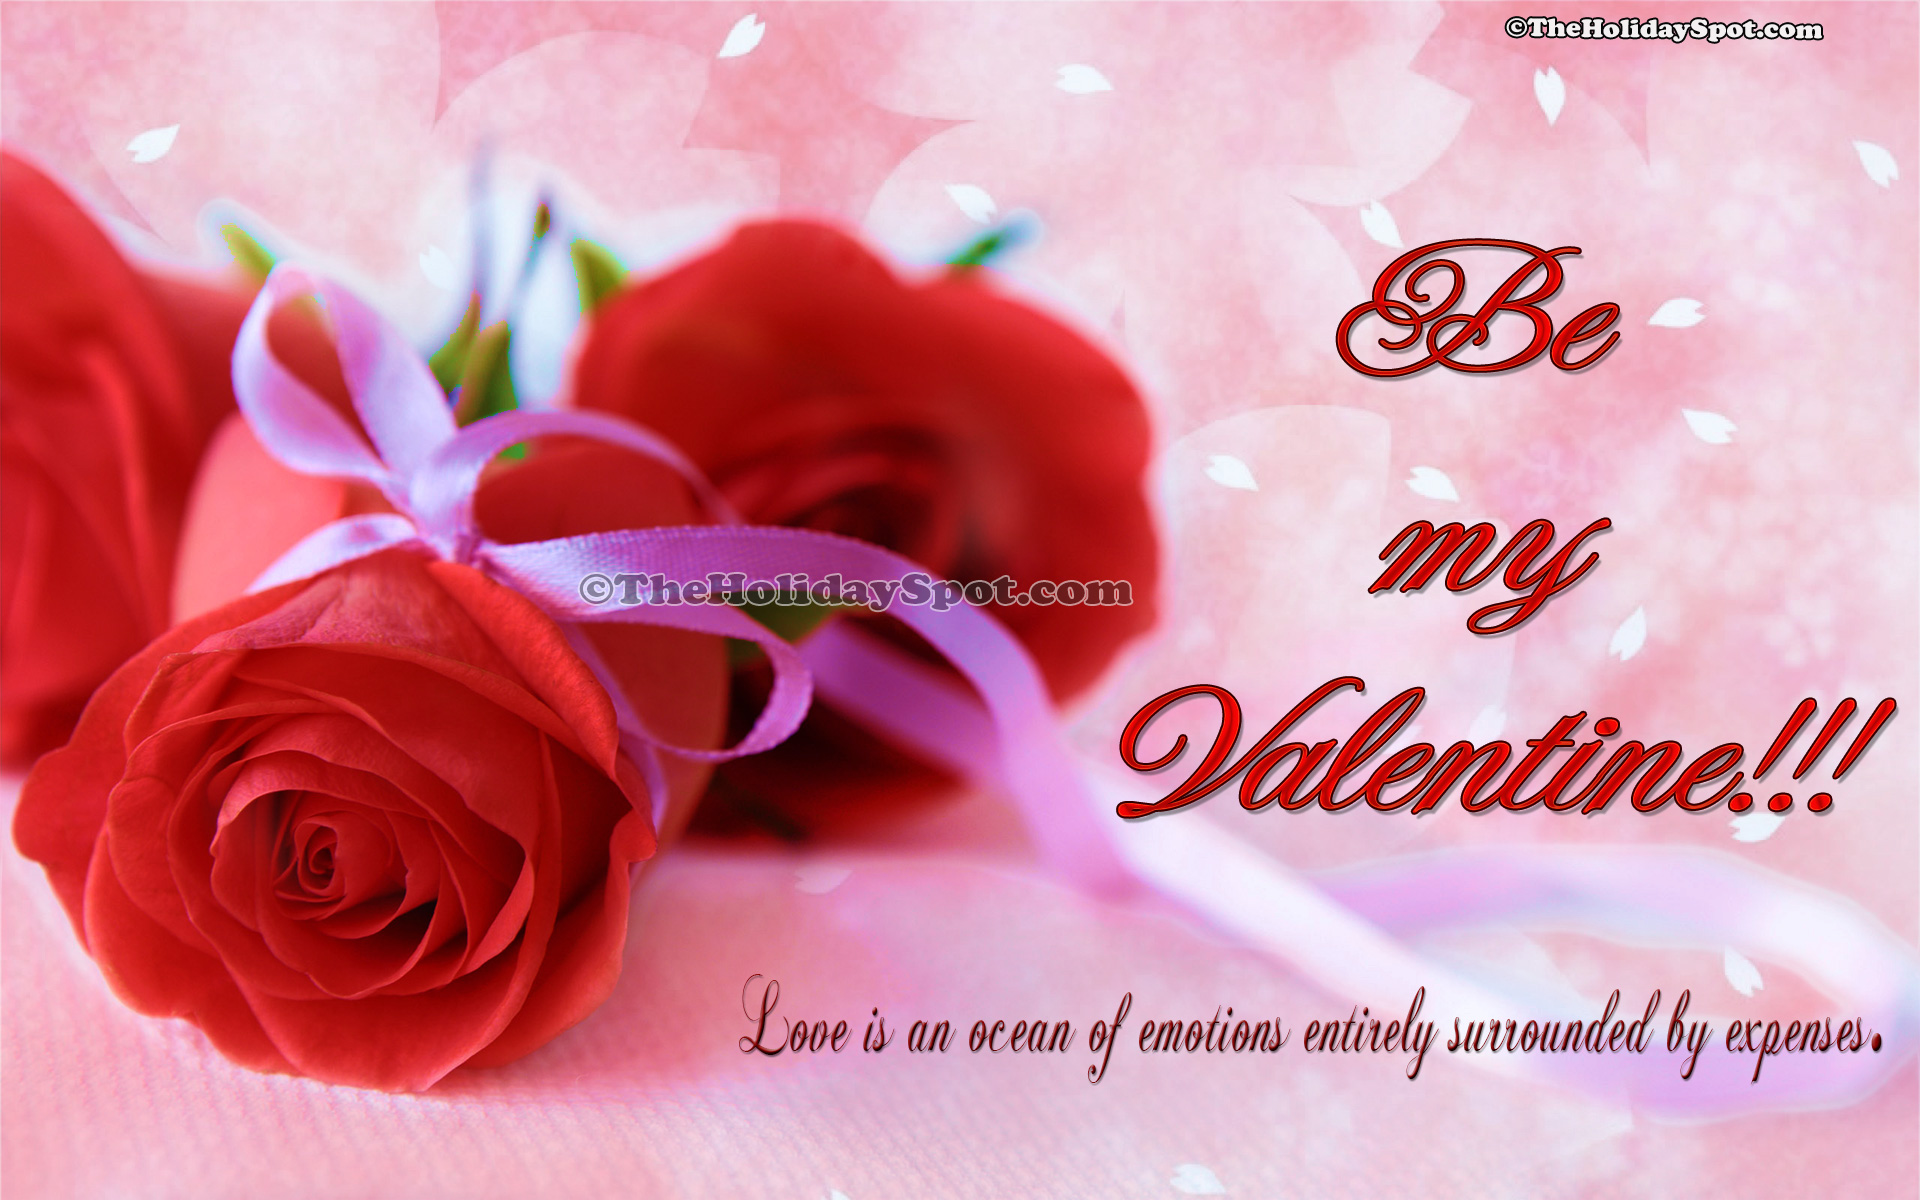 2017 new beautiful happy valentines day 45 hd wallpaper images 1920x1200